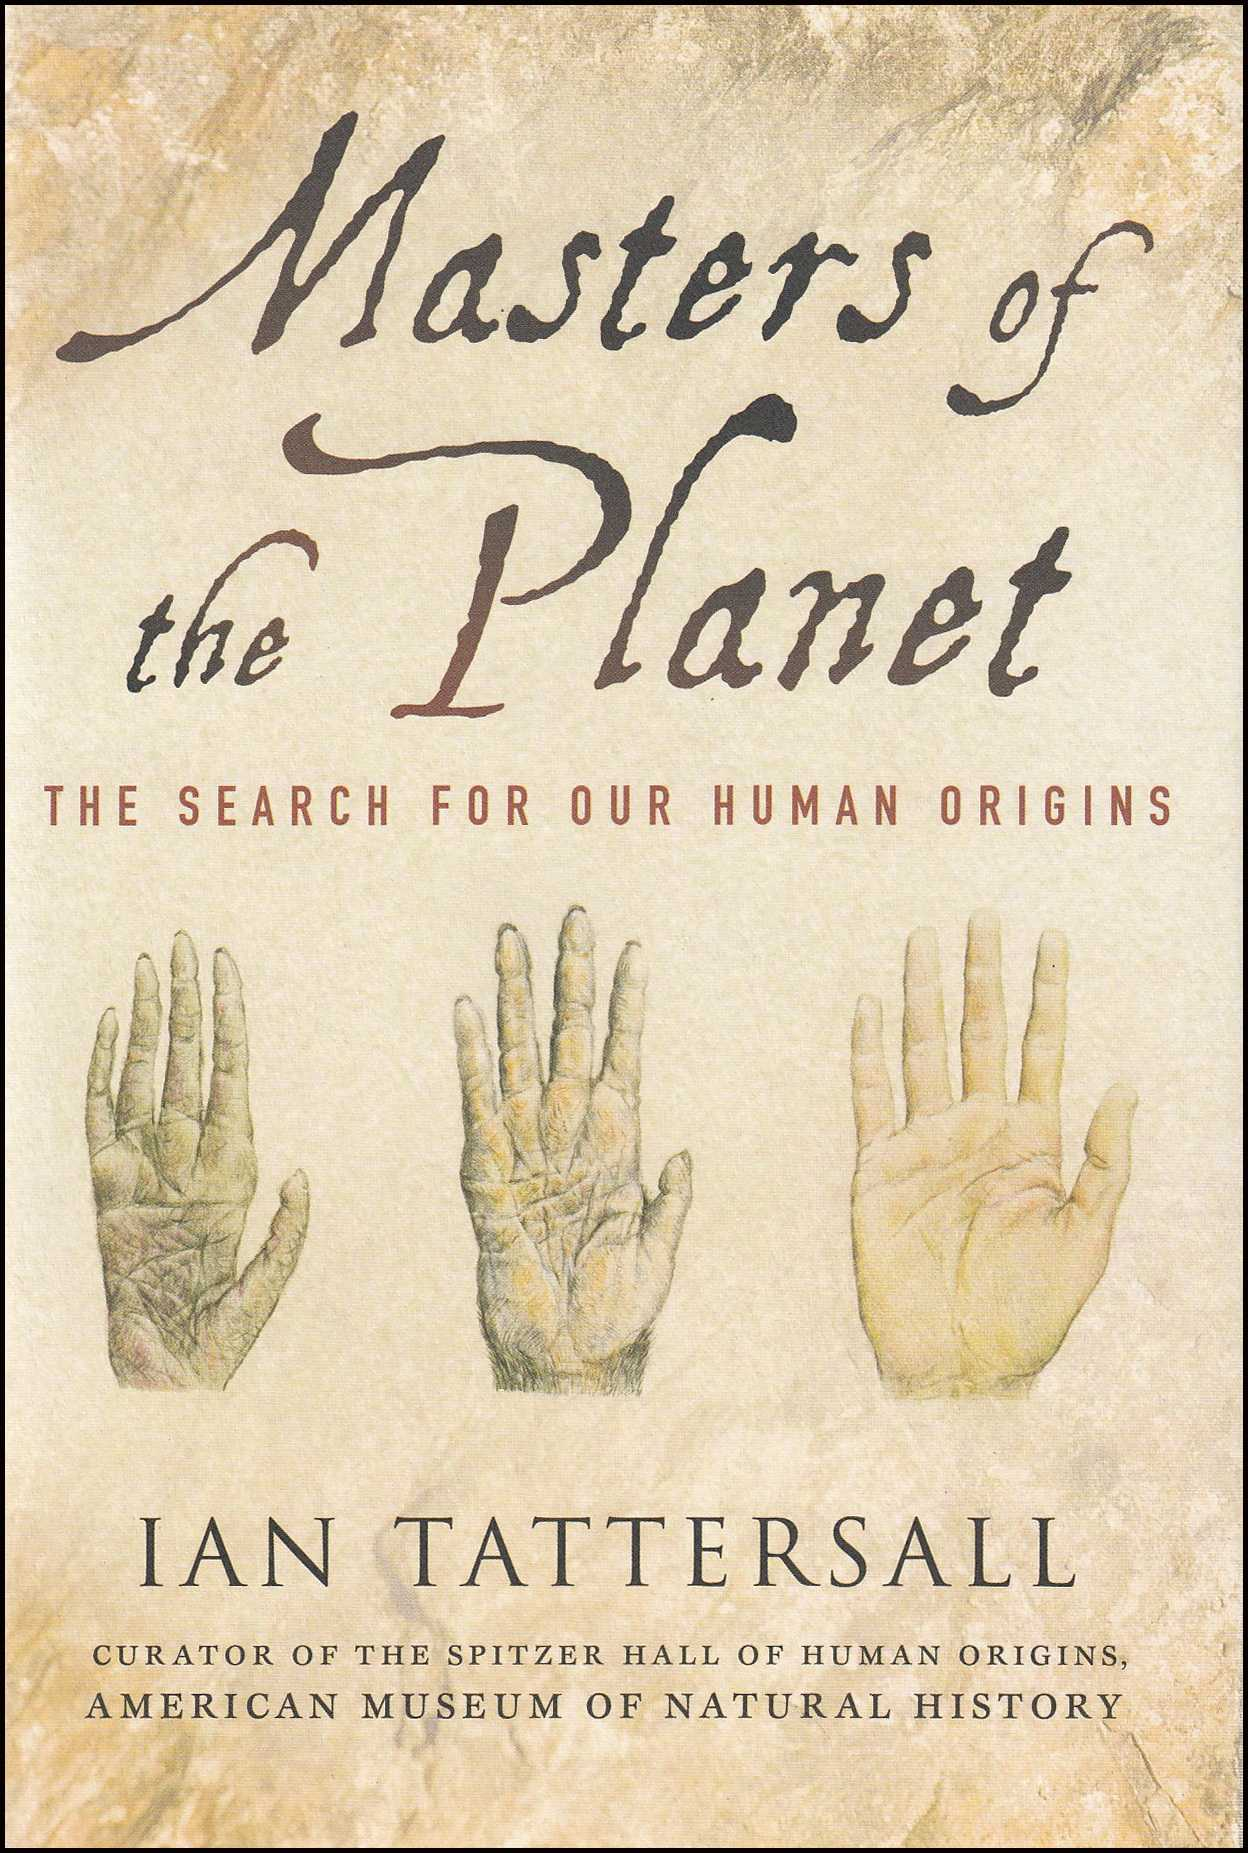 TATTERSALL, IAN - Masters of the Planet: The Search for Our Human Origins